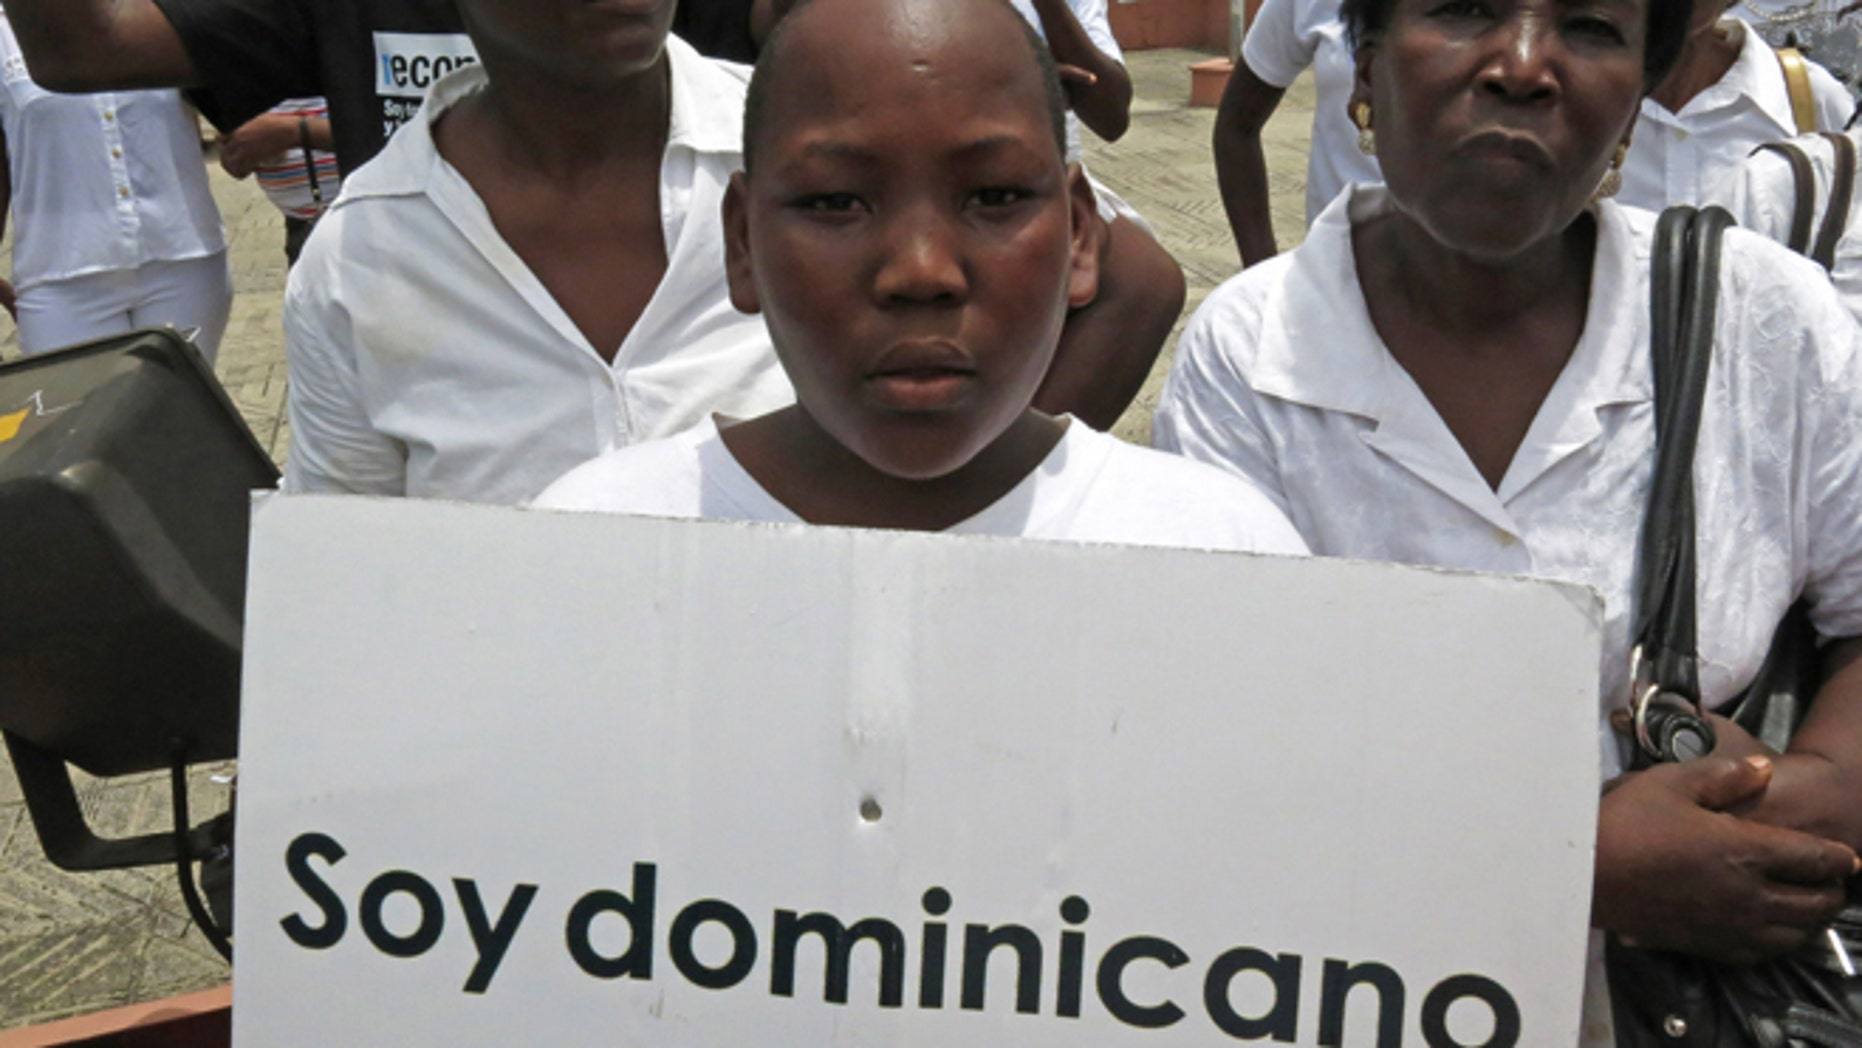 """FILE - In this Aug. 12, 2013 file photo, a youth of Haitian descent holds a sign that reads in Spanish """"I'm Dominican"""" during a protest demanding that President Danilo Medina stop the process to invalidate their birth certificates after authorities retained their ID cards, in Santo Domingo, Dominican Republic. The Dominican Republic's top court on Thursday, Sept. 26, 2013 stripped citizenship from thousands of people born to migrants who came illegally, a category that overwhelmingly includes Haitians brought in to work on farms. The decision cannot be appealed, and it affects all those born since 1929. (AP Photo/Ezequiel Abiu Lopez, File)"""